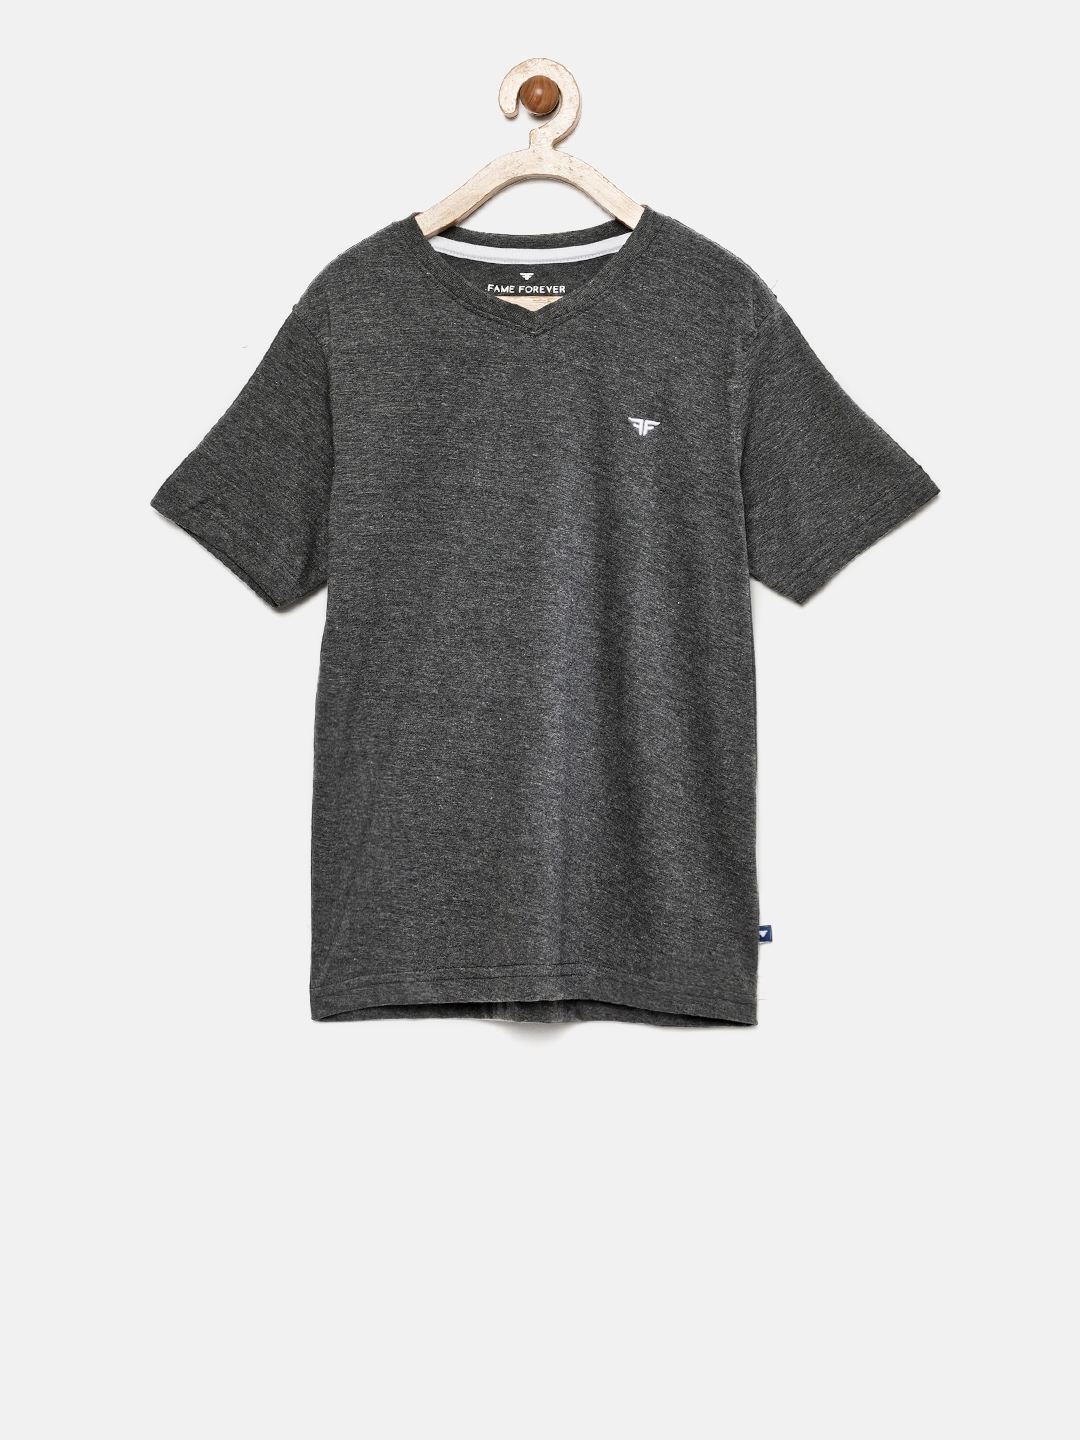 996437a7 Buy Fame Forever By Lifestyle Boys Charcoal Grey Solid V Neck T ...